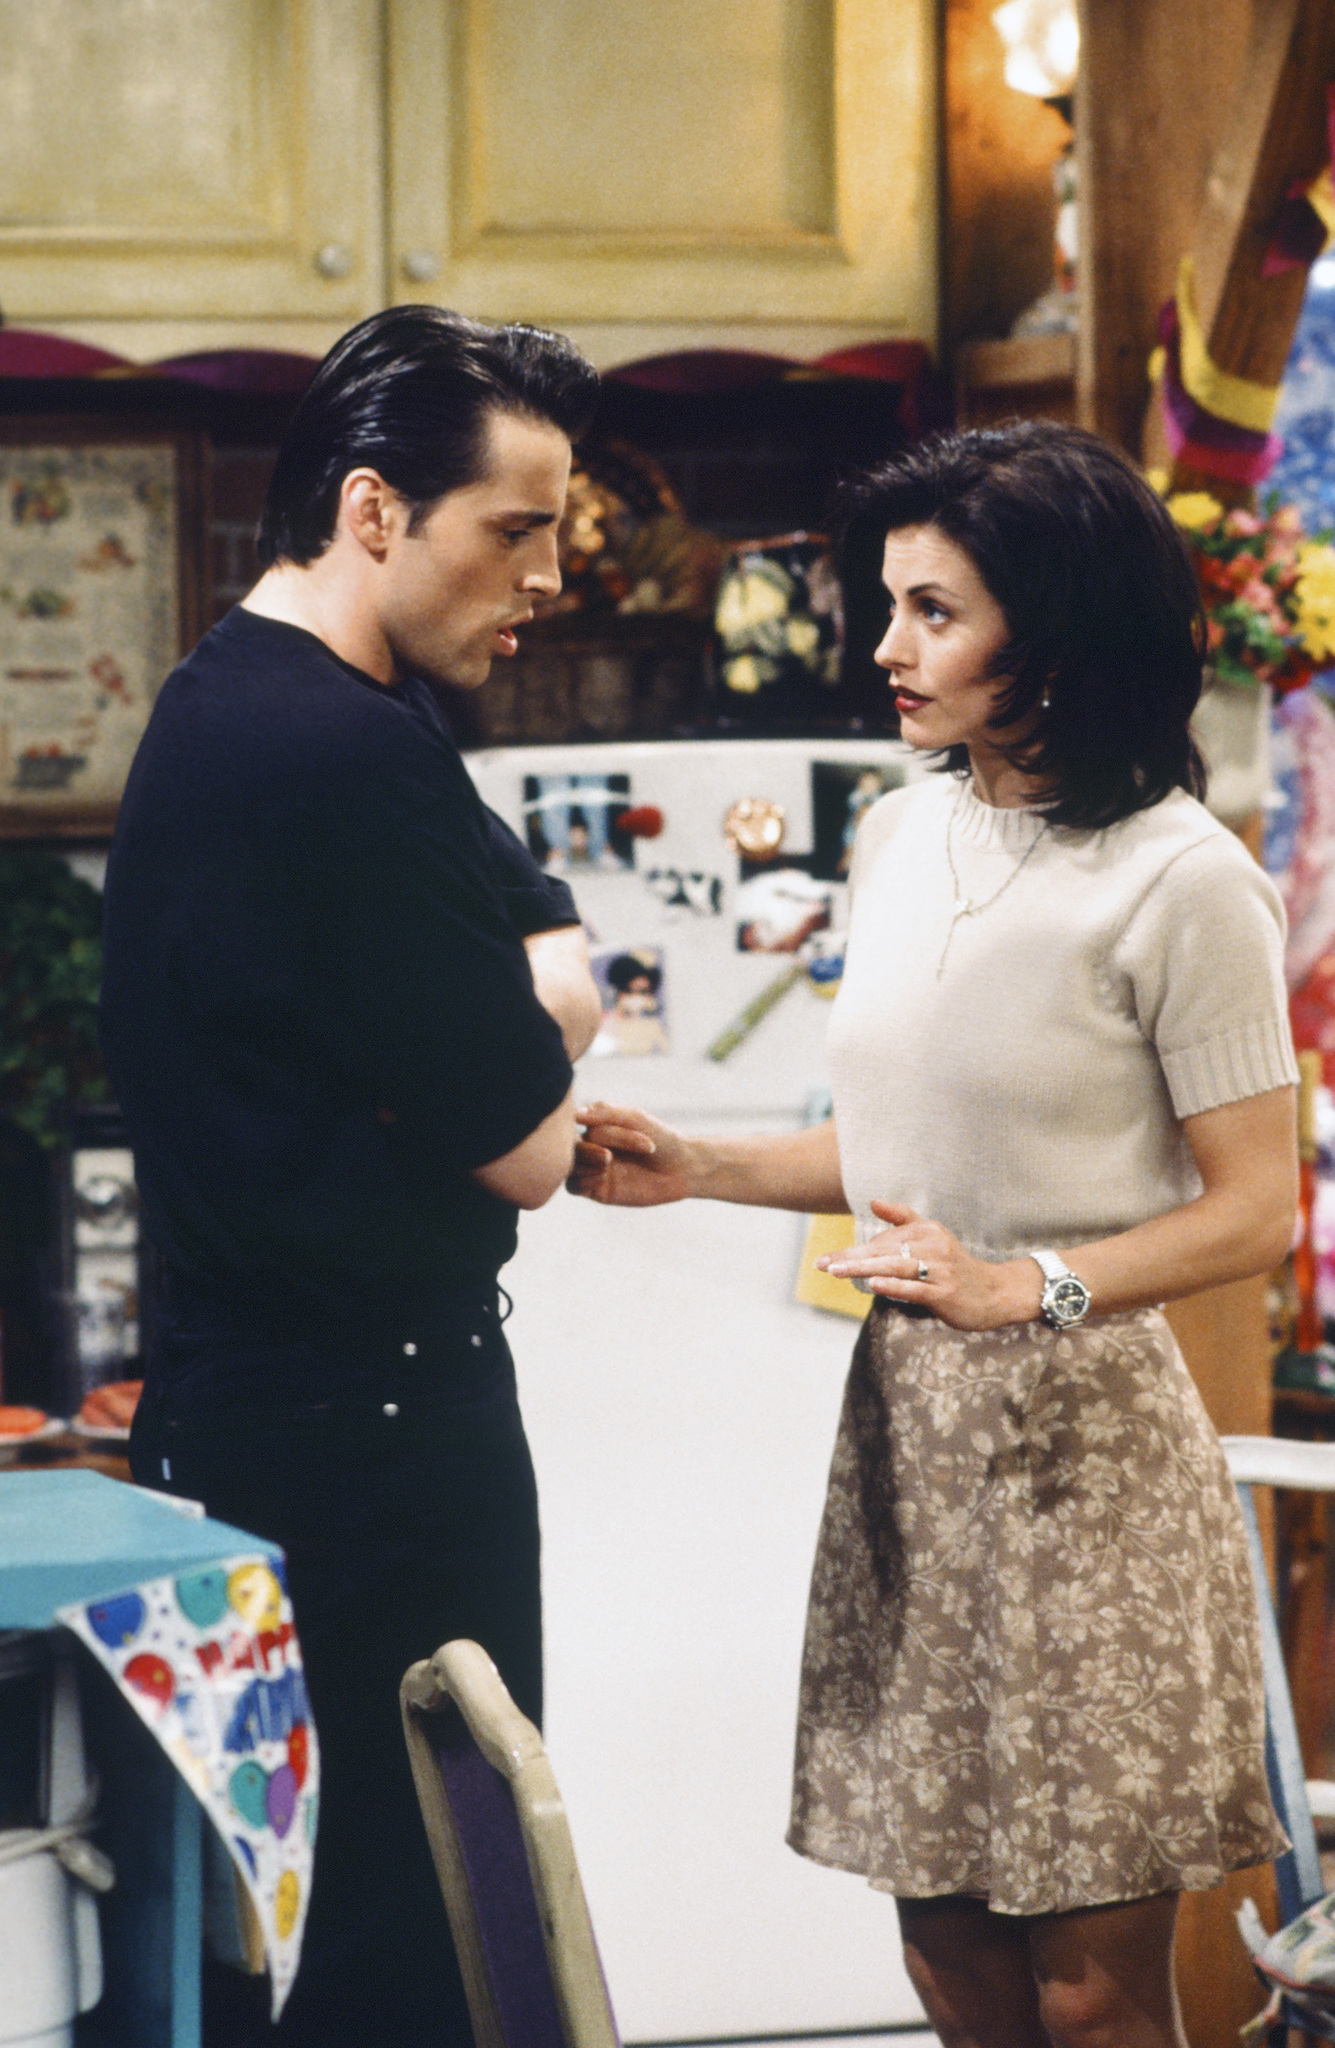 Friends: The One Where Rachel Finds Out | Season 1 | Episode 24